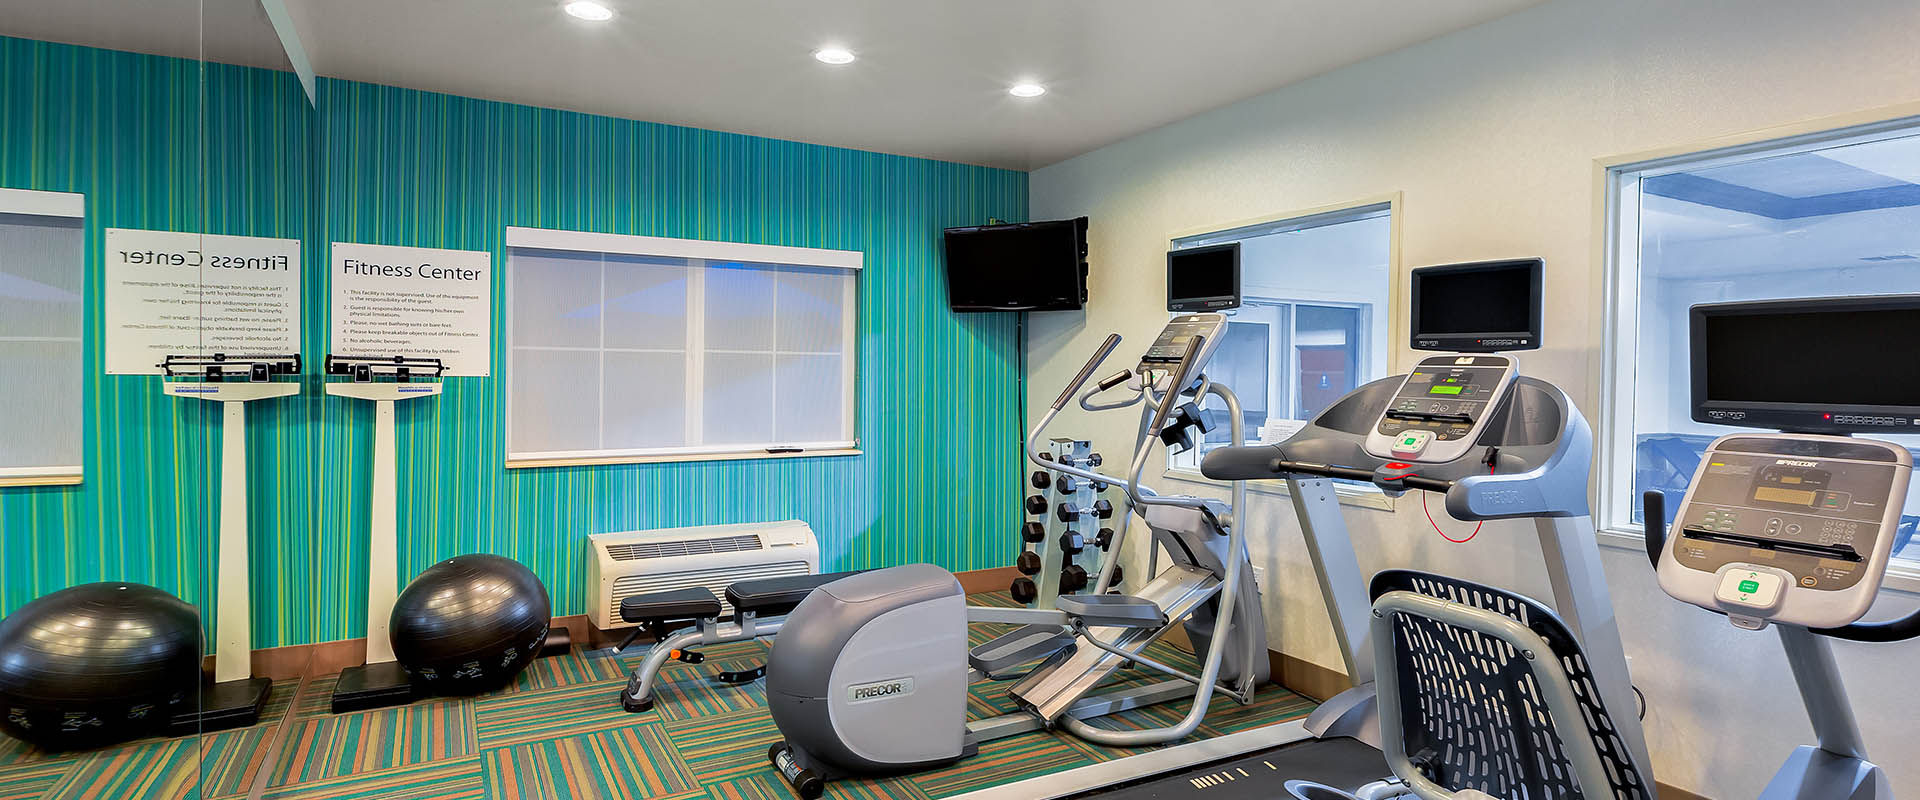 IHG hotel, Oroville, California, coporate, travel, fitness center